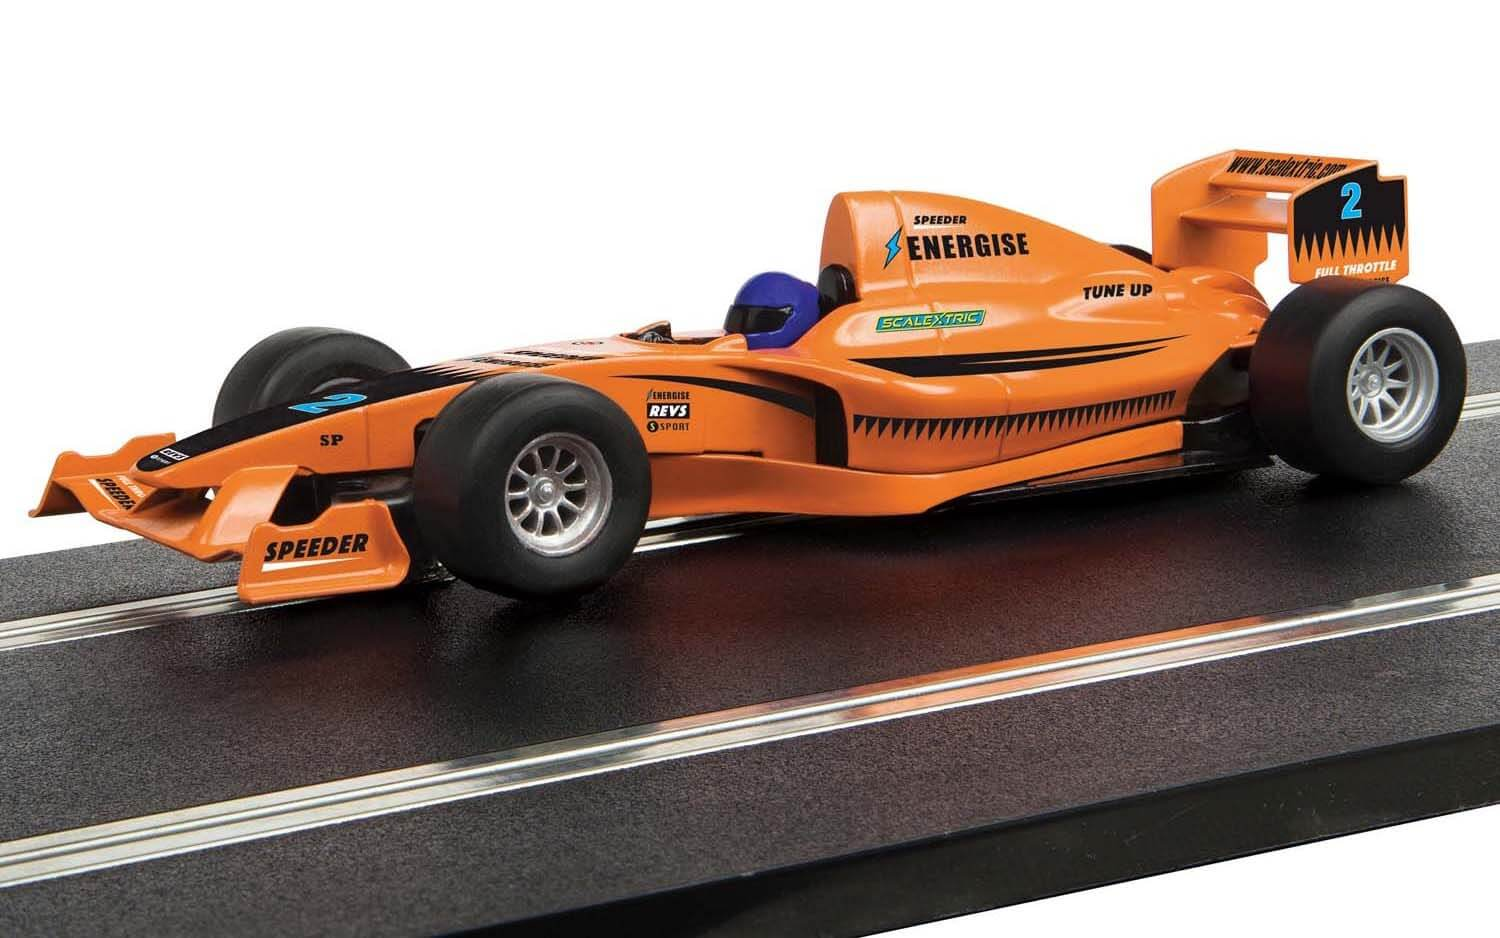 C4114 Scalextric F1 Racing Car - 'Team Full Throttle'